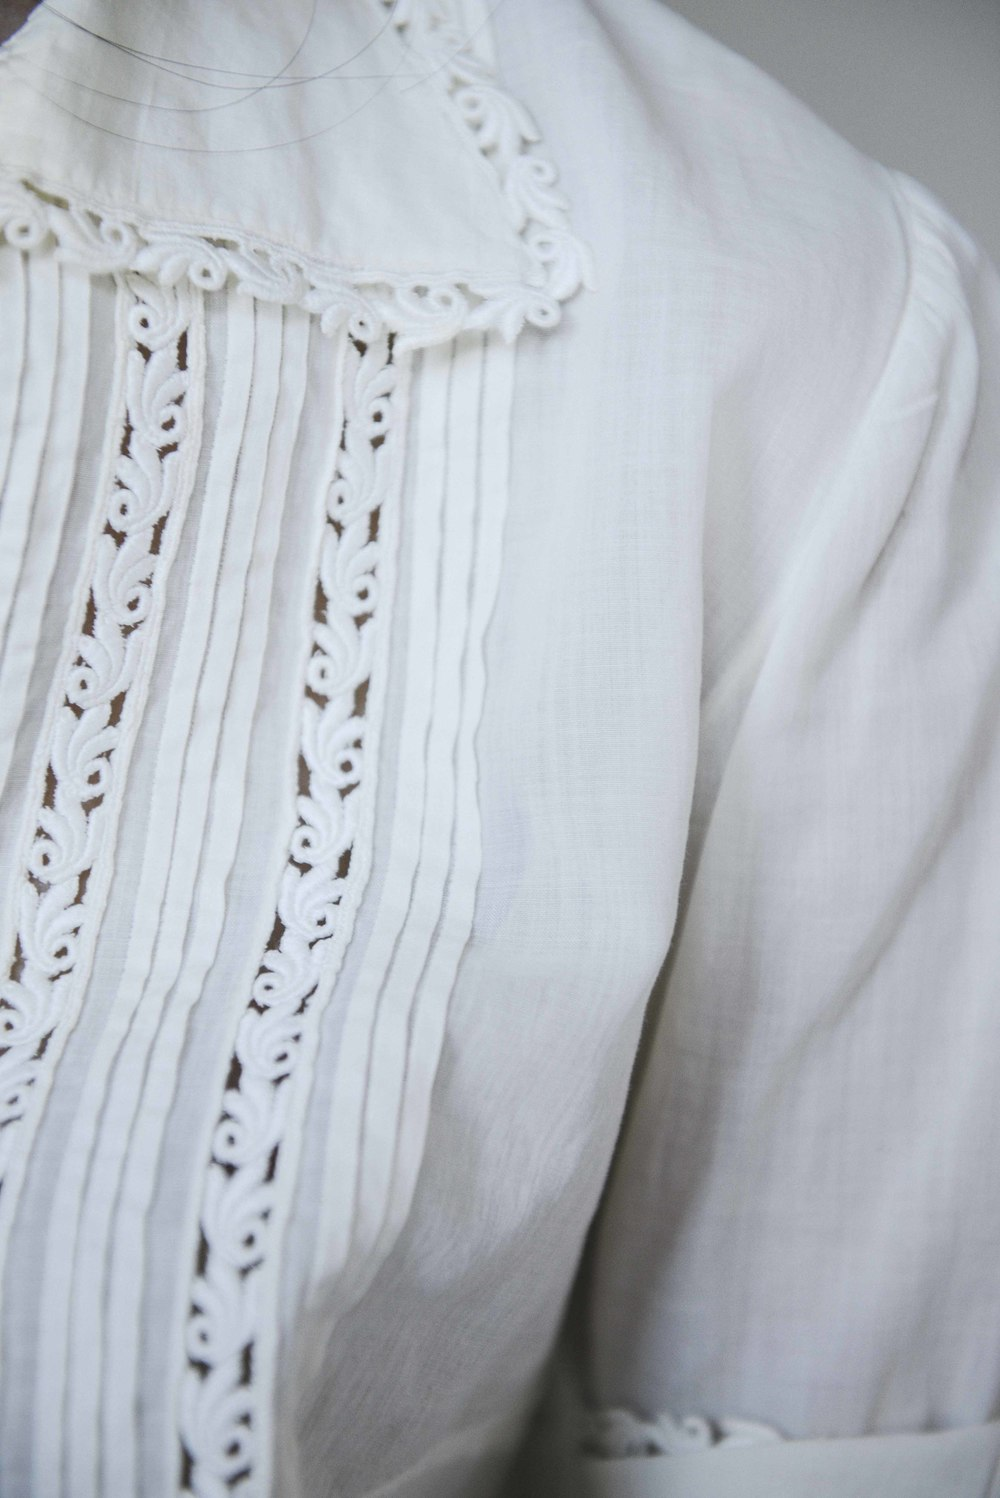 EARLY 1900S BLOUSE